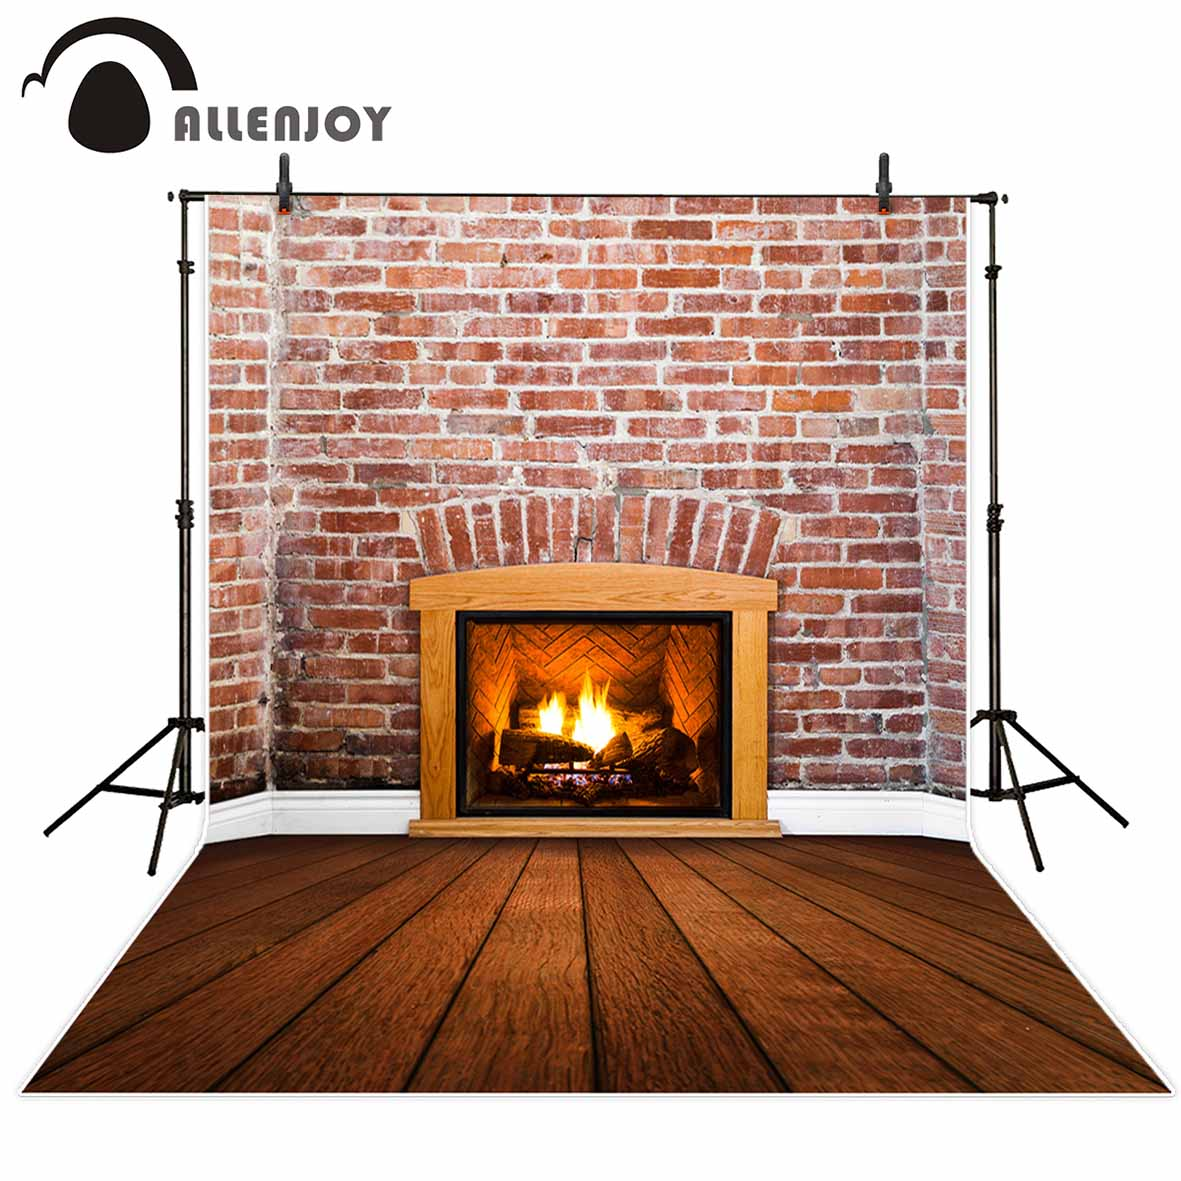 Allenjoy photography background Fireplace Brick Wall Wooden Floor Interior Christmas backdrop photo background studio allenjoy backdrop background wonderland